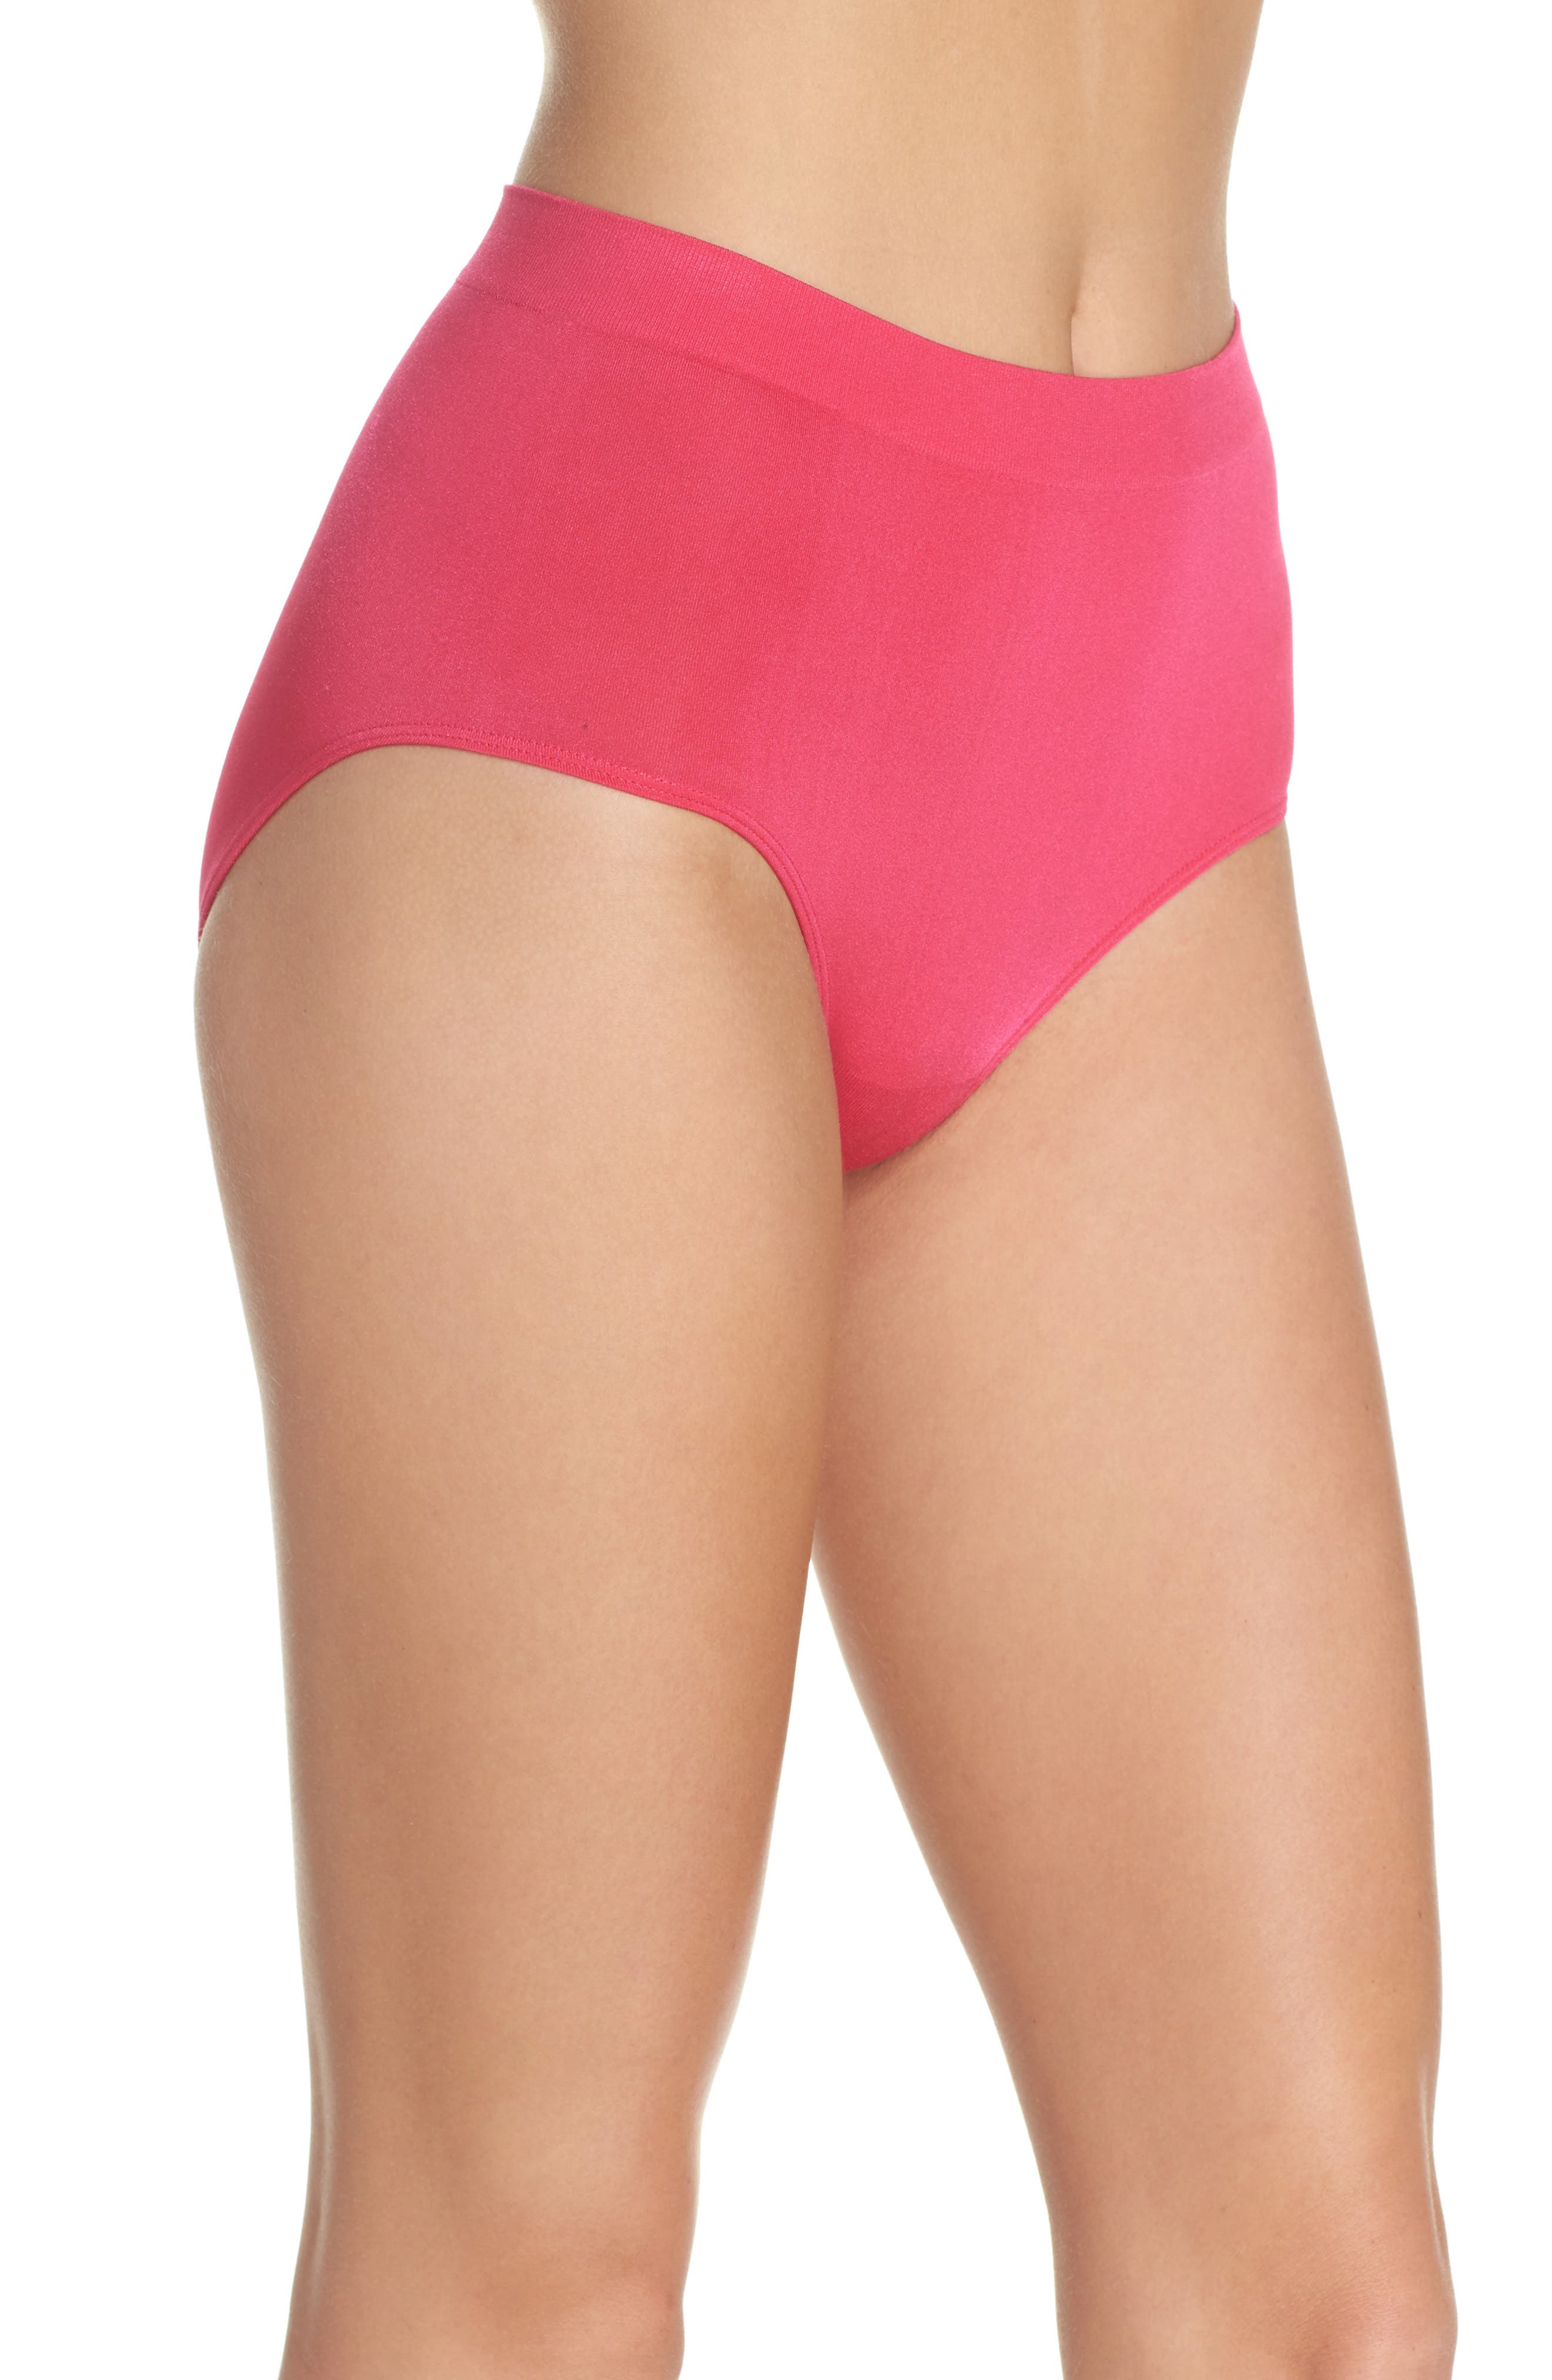 B Smooth Briefs,                             Alternate thumbnail 149, color,